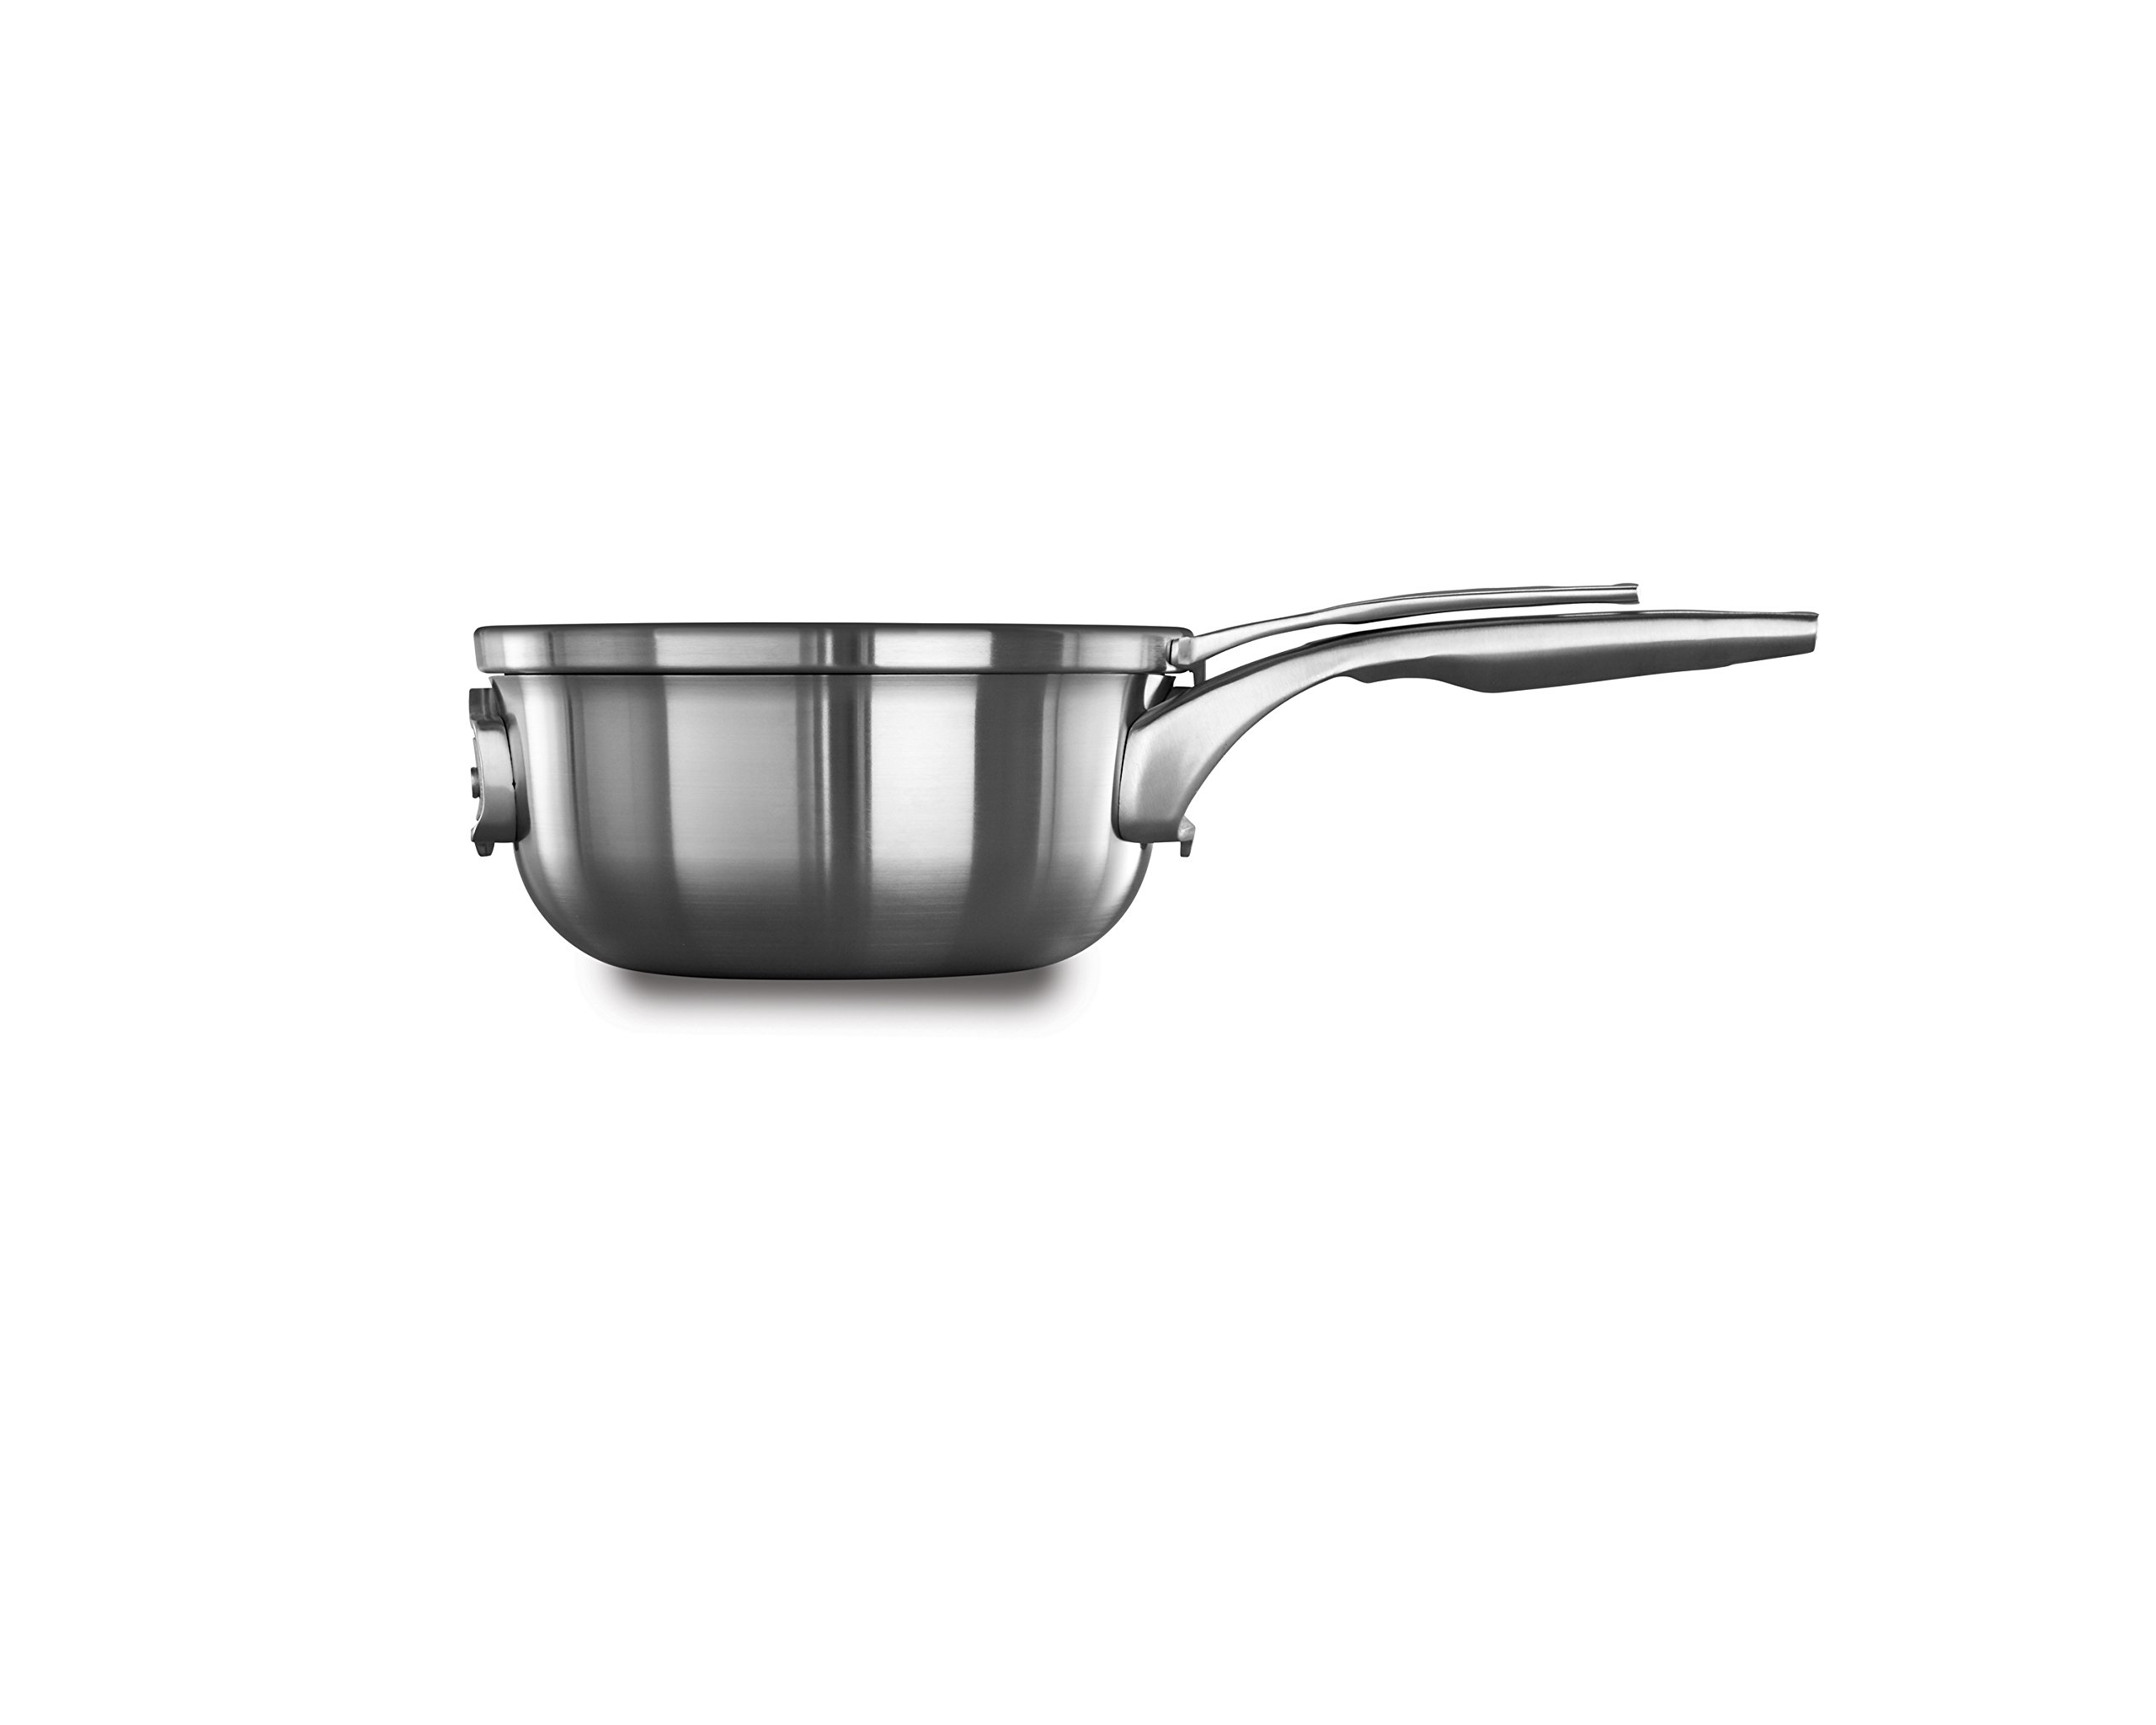 Calphalon Premier Space Saving Stainless Steel 2.5qt Chef's Pan with Cover